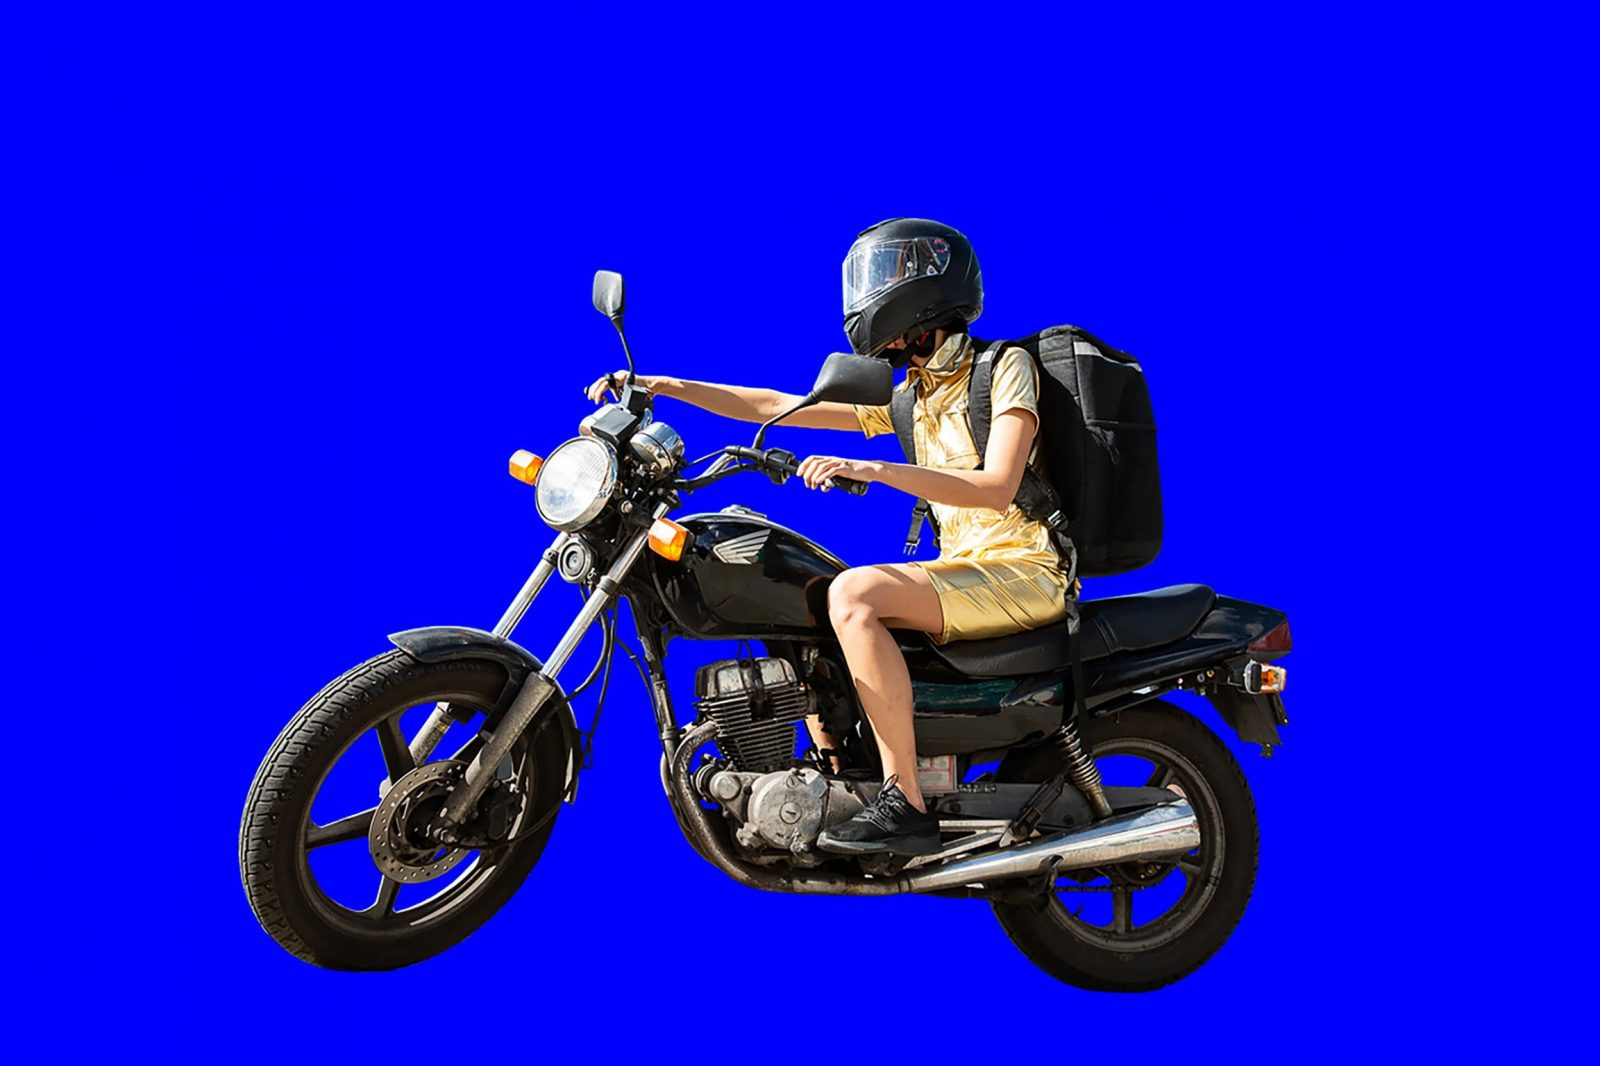 person in gold dress riding a motorbike with food delivery backpack